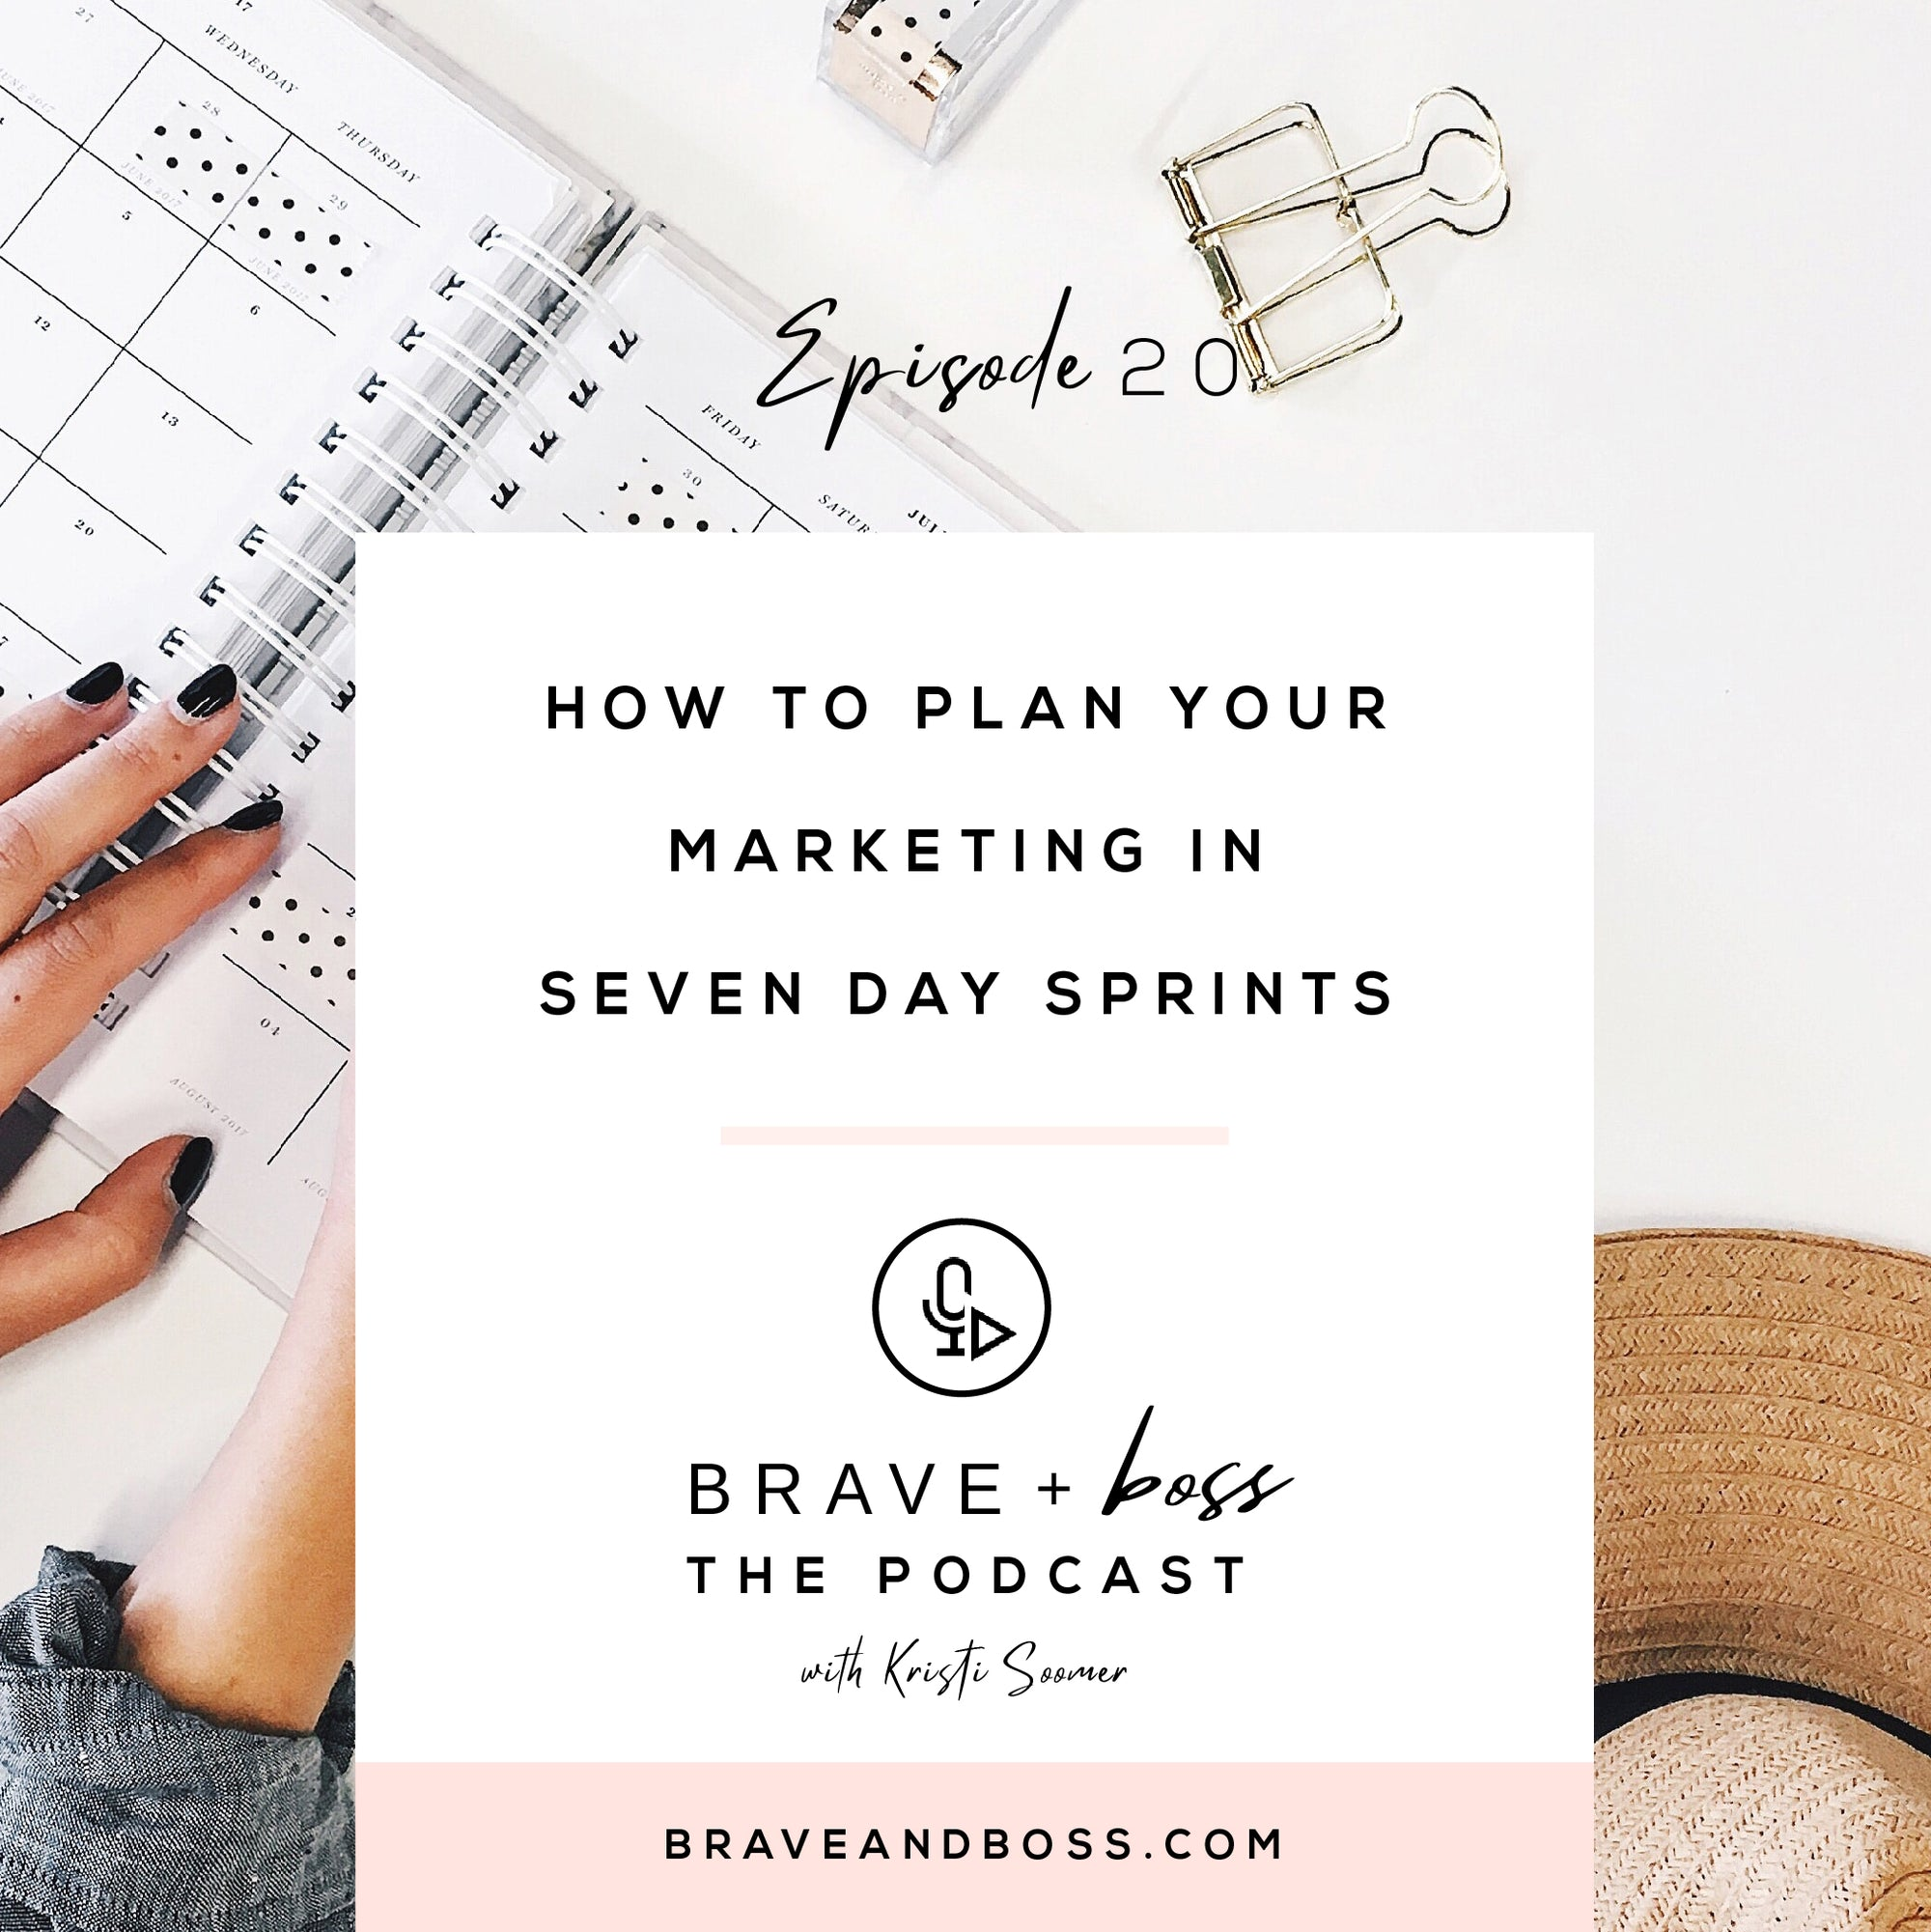 How to Plan your Marketing in 7 Day Sprints